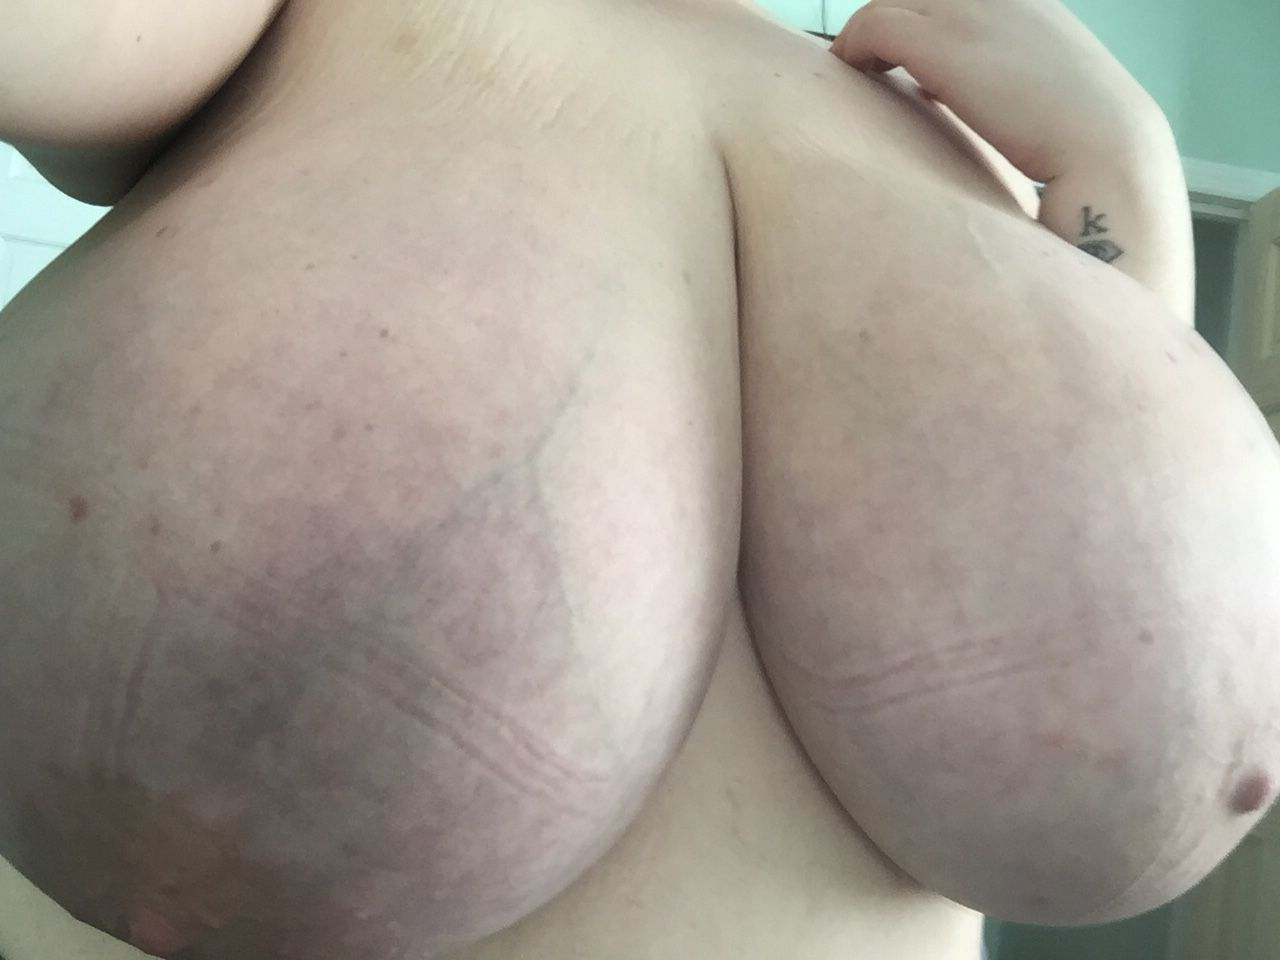 cocainegang:  itskaitiecali:  Stuffing into a bra leaves these marks ugh  Fame whore lol she'll show you anything for a like x retweet x reblog and some ego stroking  Aww I'm a fame whore? Nahhh people told me about ur twat being shoved in with a bat